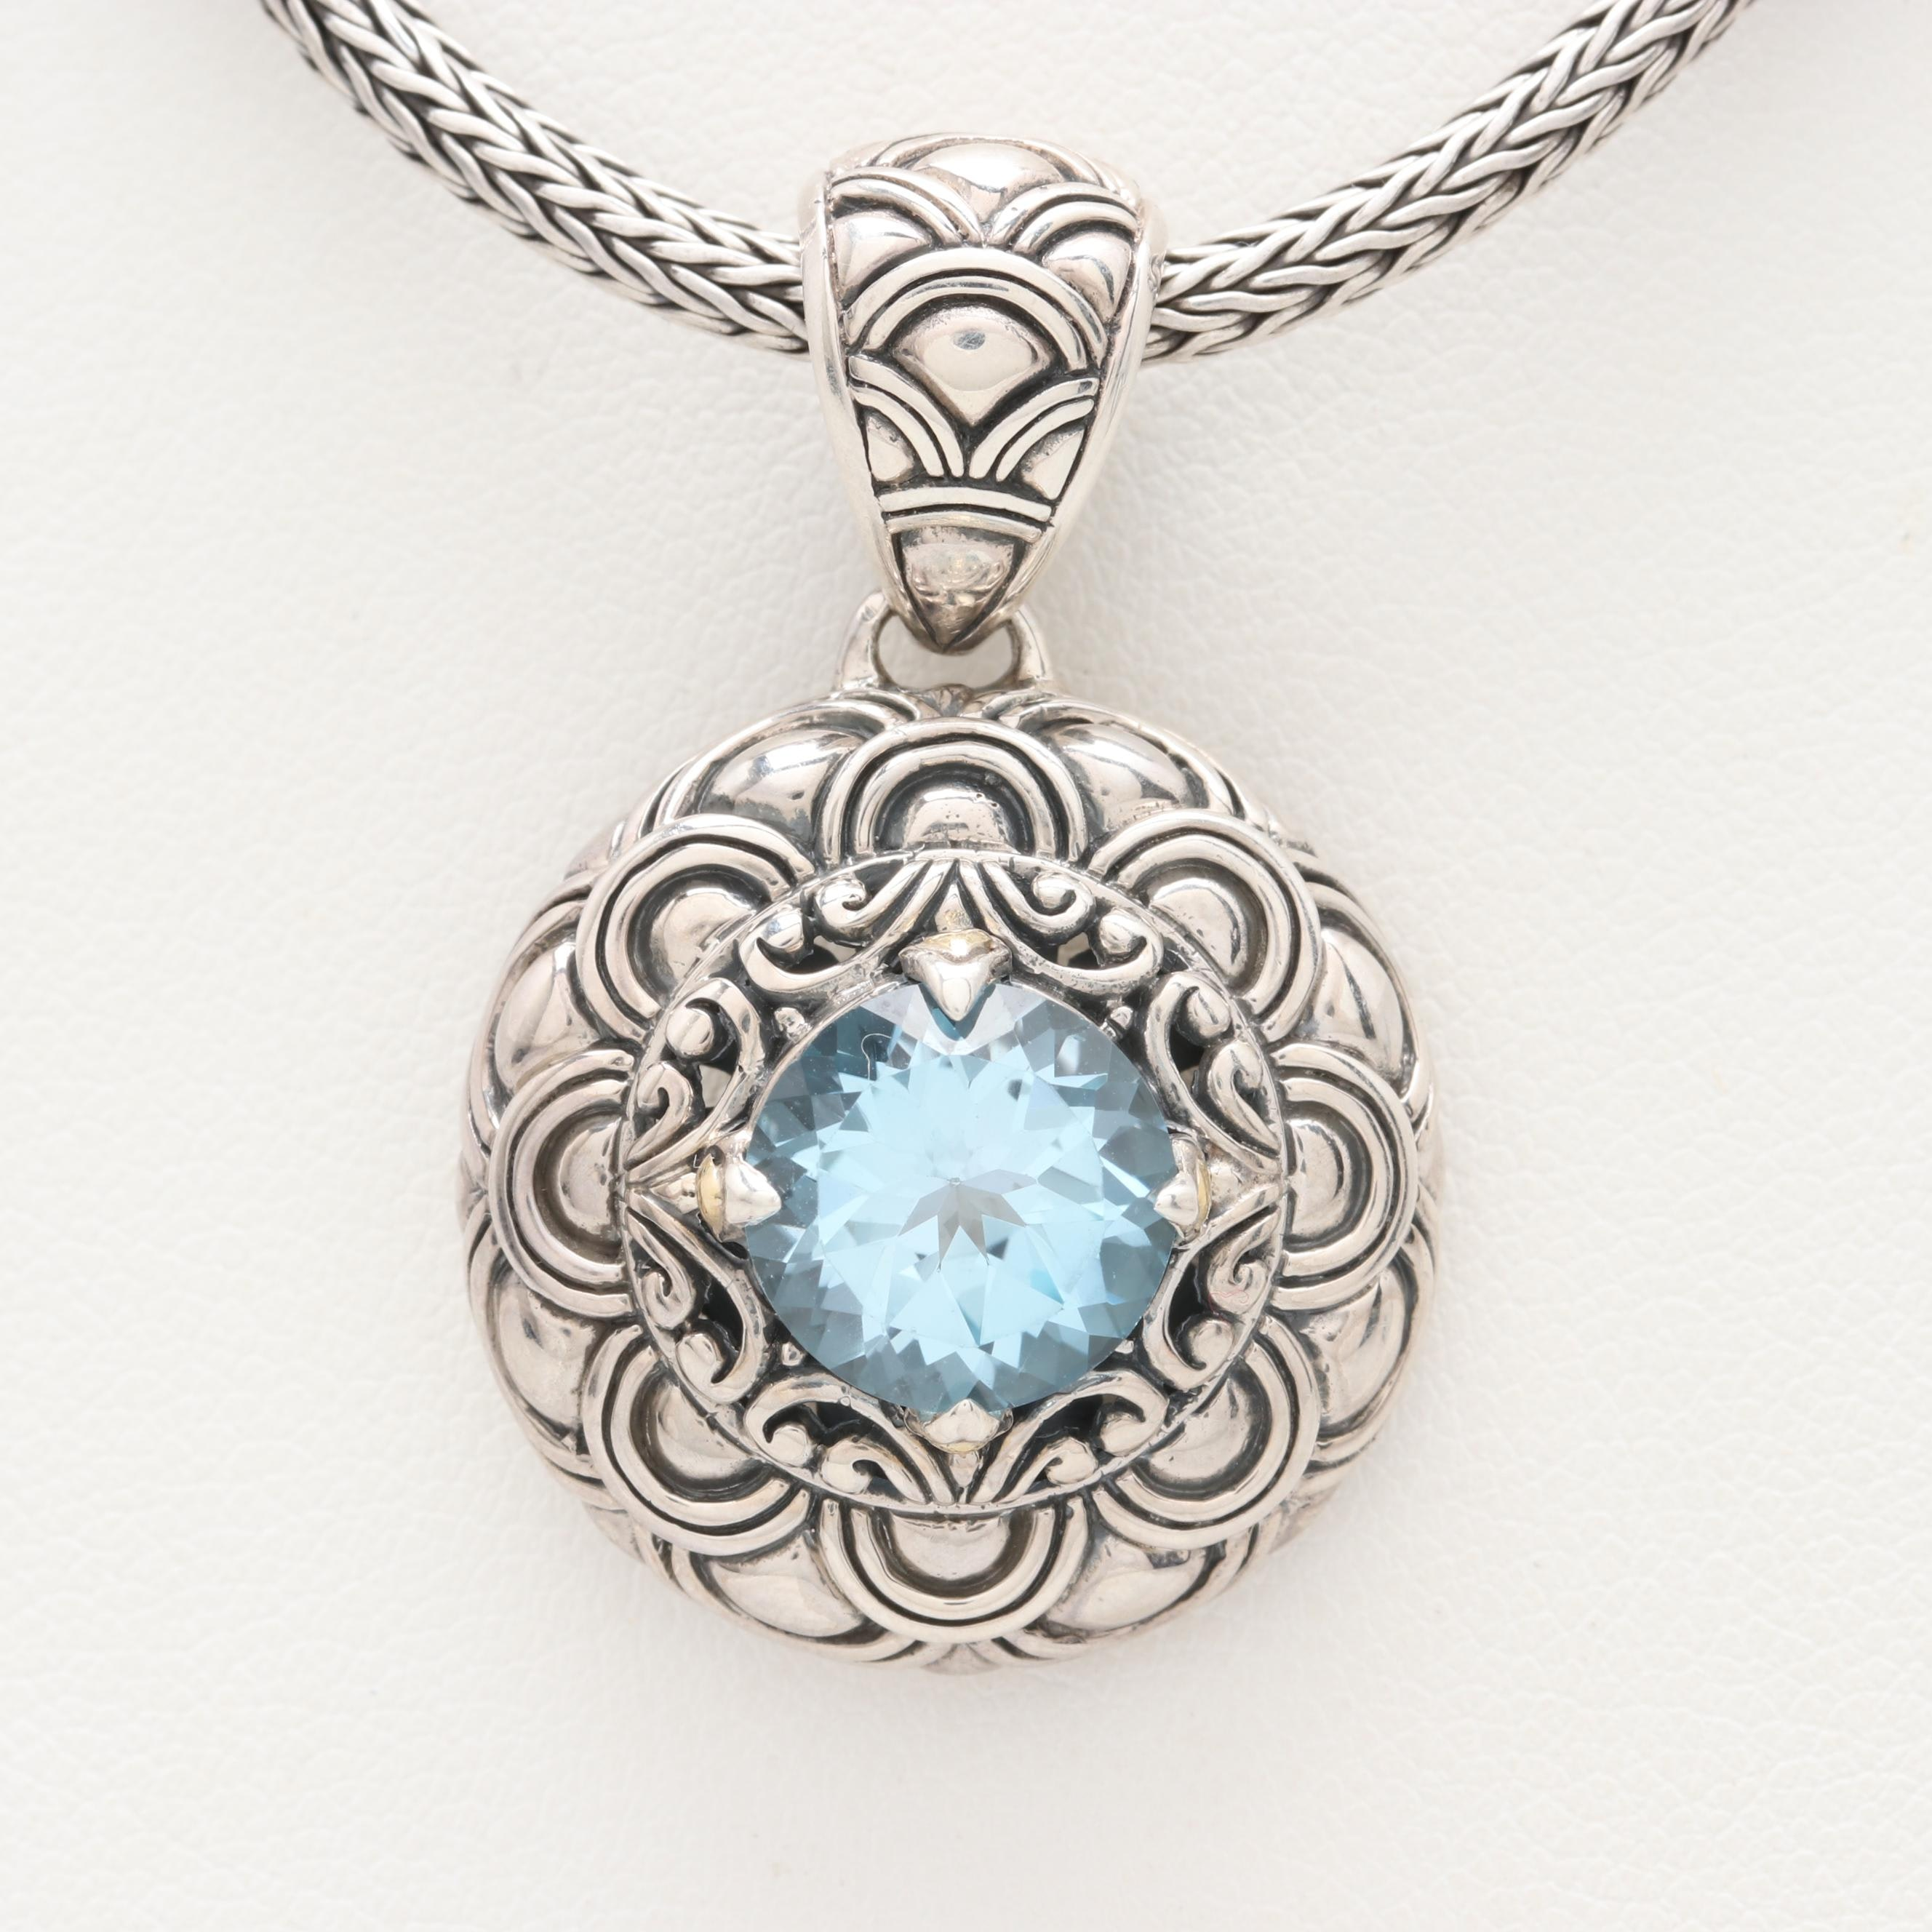 Robert Manse Sterling Silver Topaz Necklace with 18K Accents